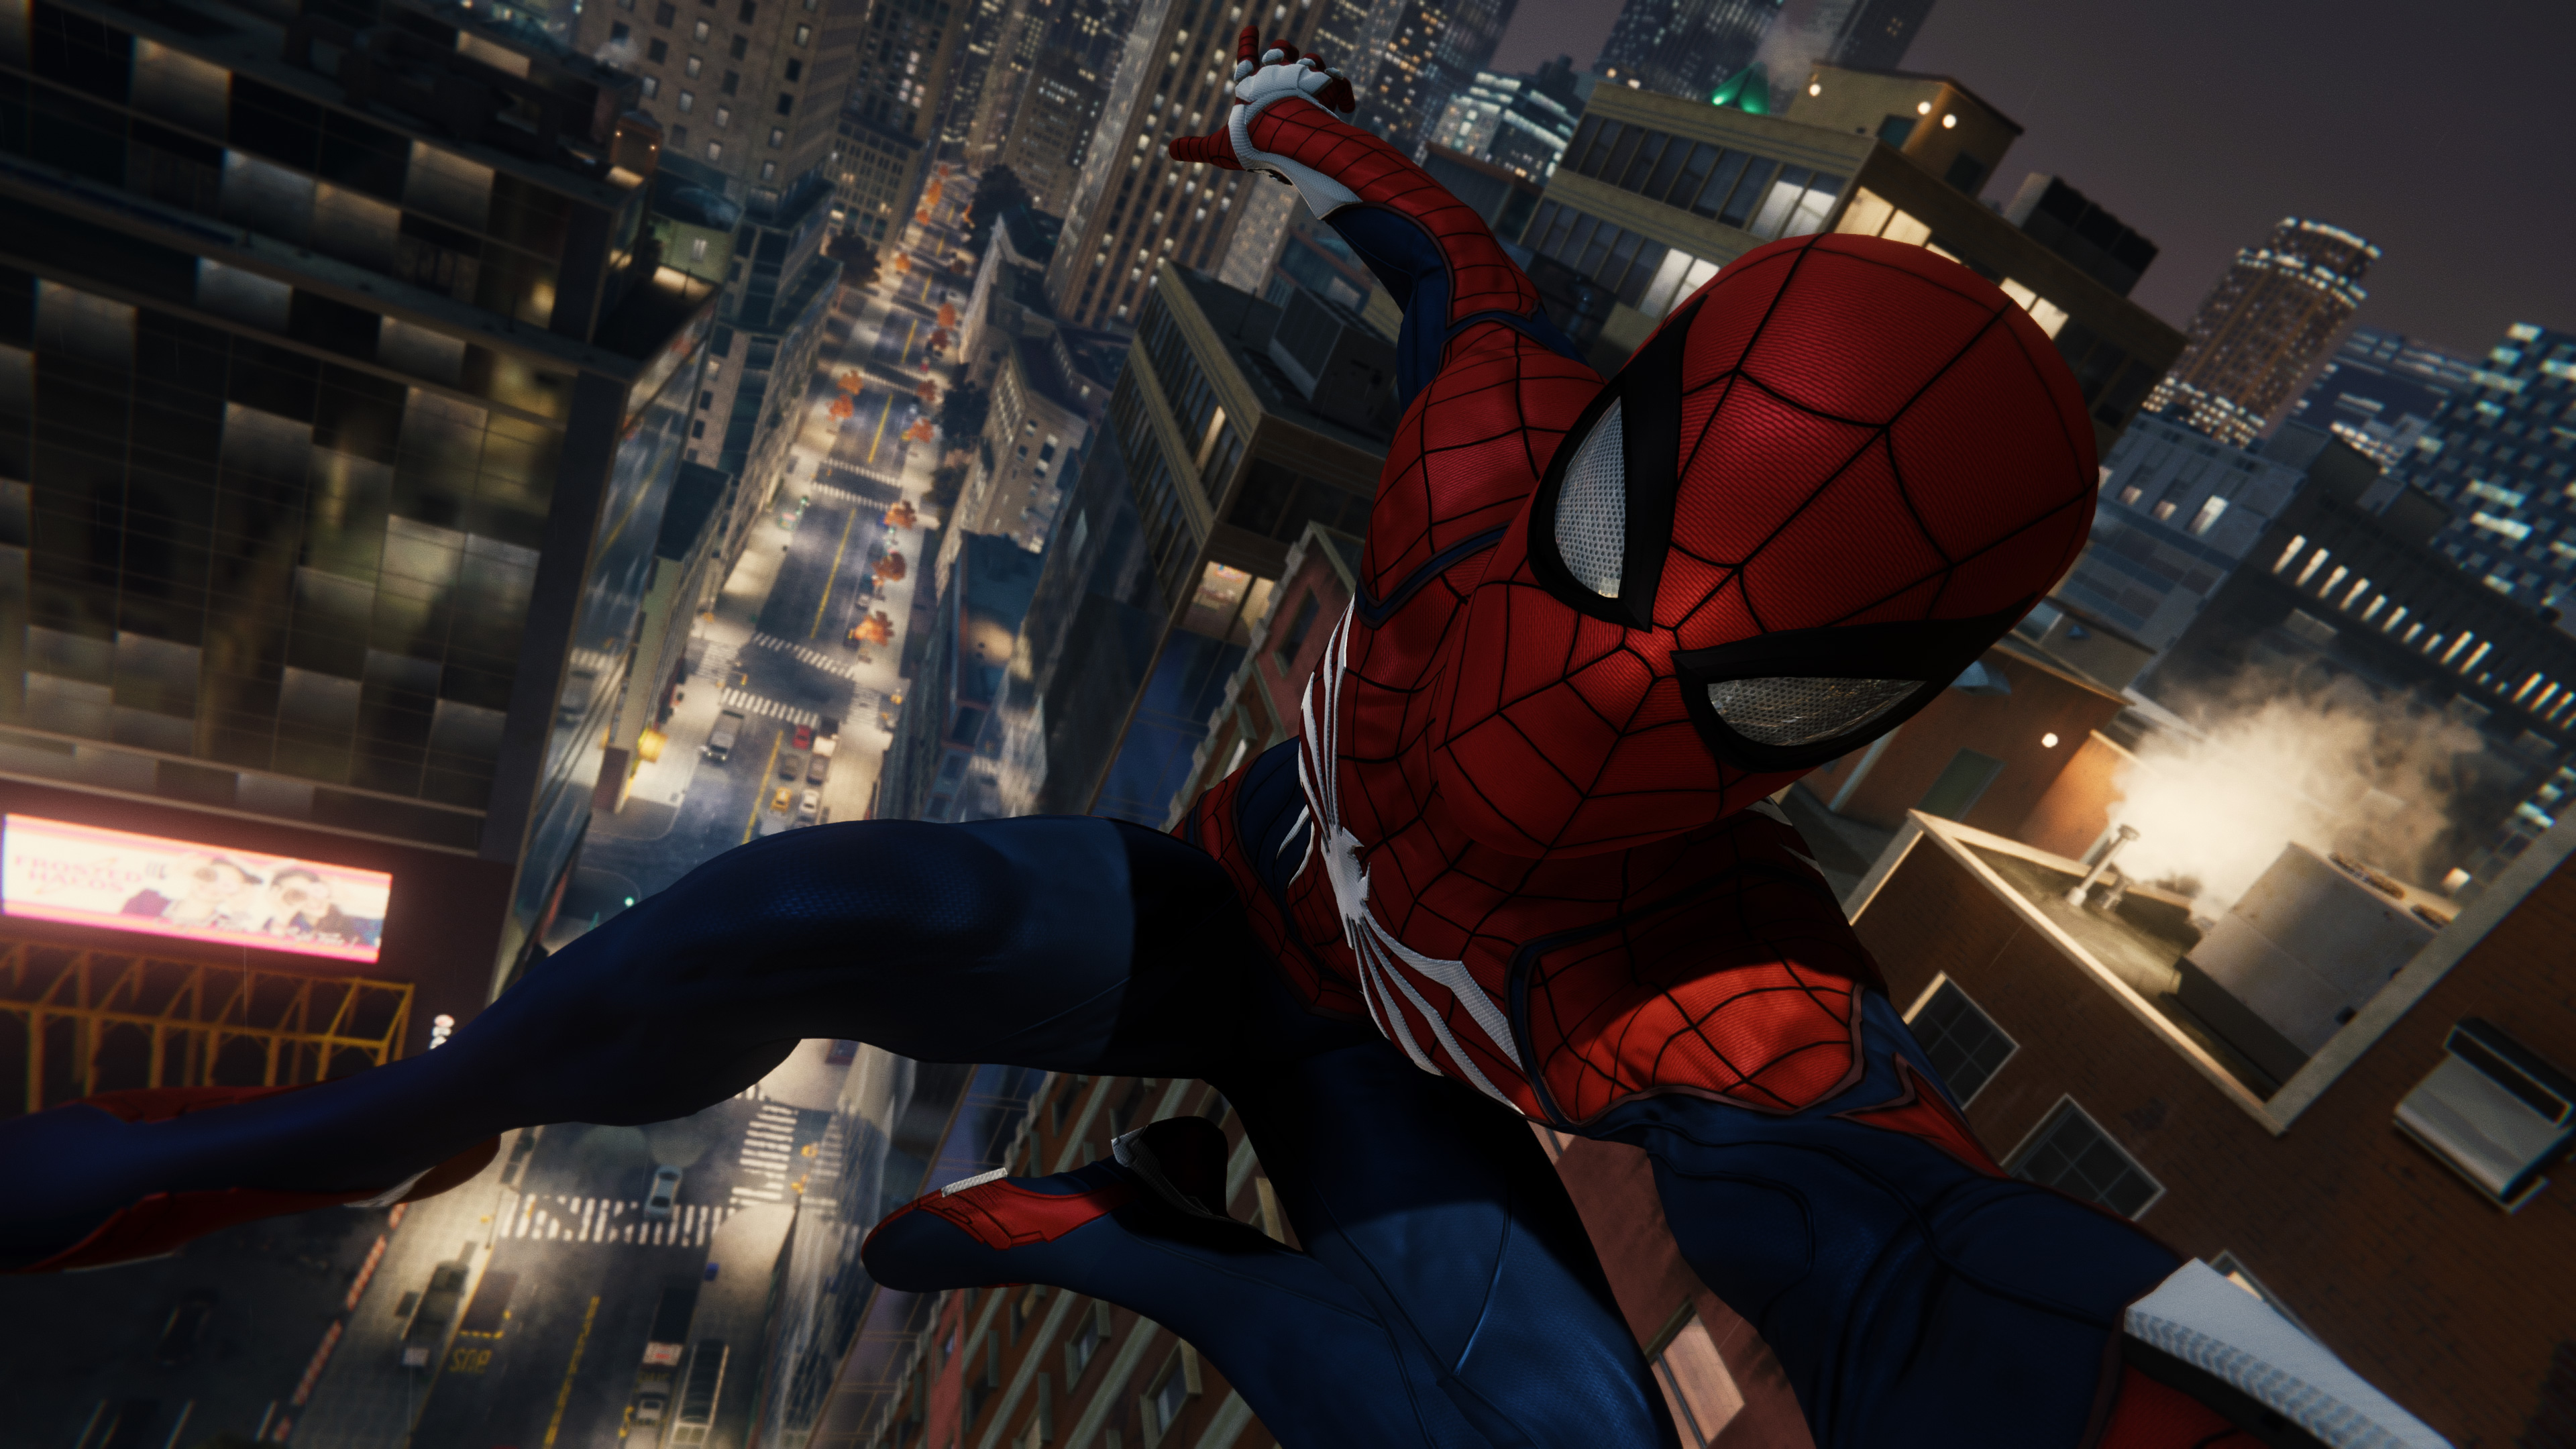 Marvel spiderman ps4 hd games 4k wallpapers images backgrounds photos and pictures - Marvel hd wallpapers 4k ...